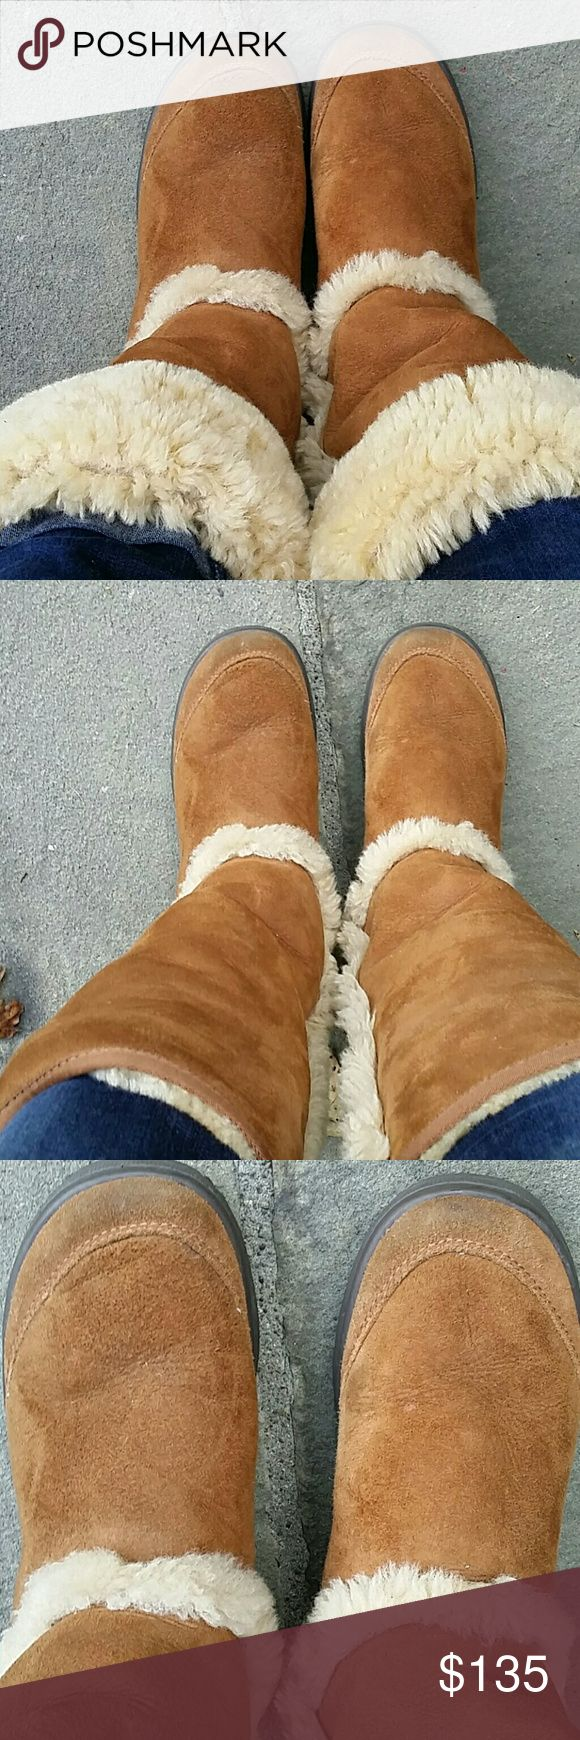 Ugg  chestnut sundance boot size 8 vguc Vguc ugg boot, foldover option to expose more shearling, so comfortable,  great condition UGG Shoes